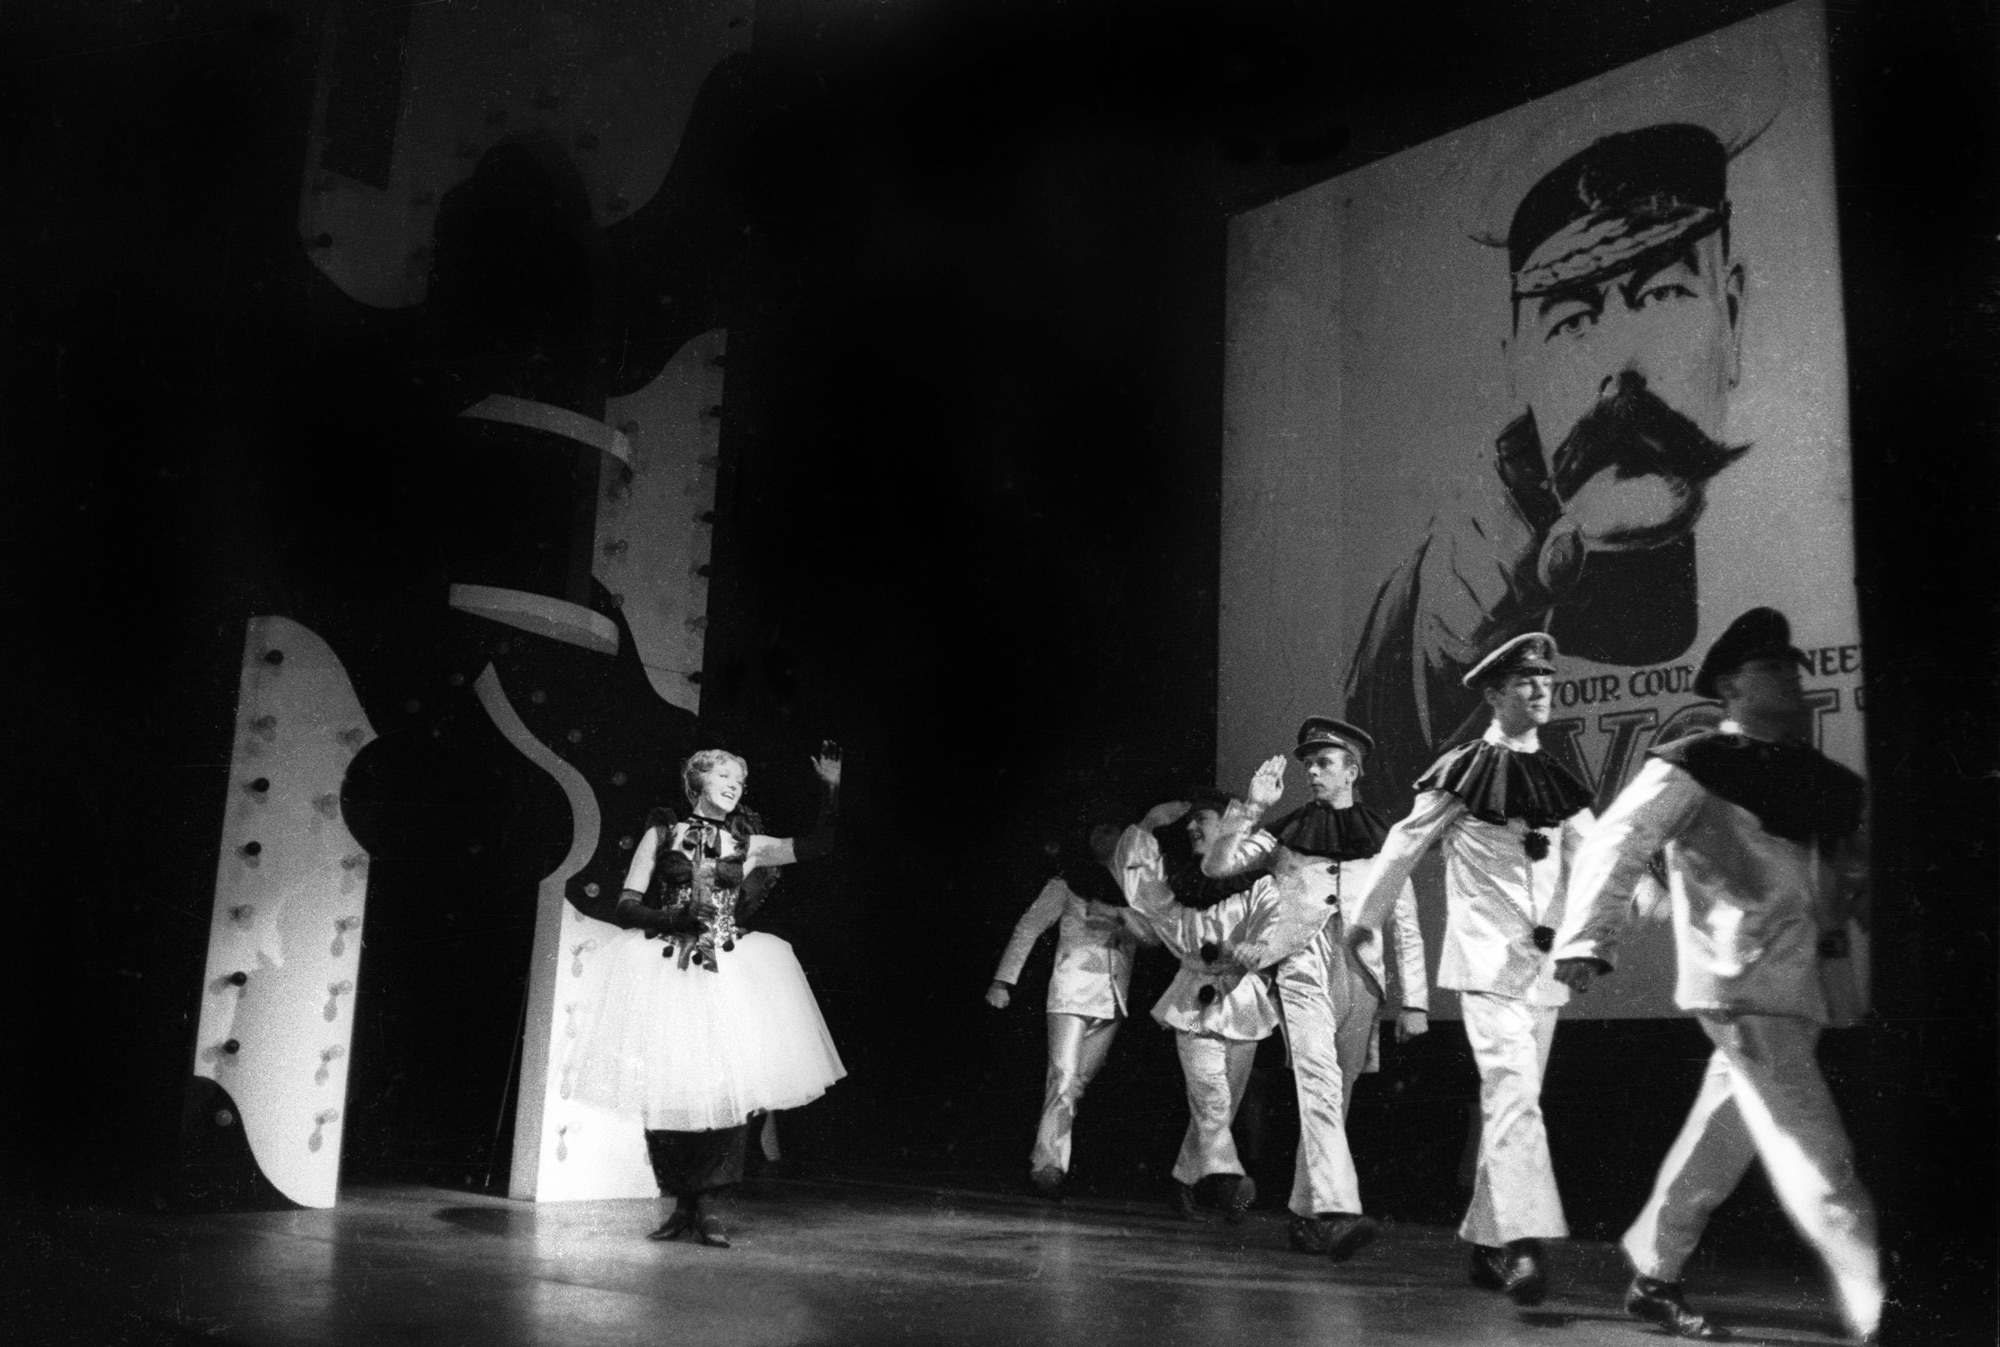 Photographs of Oh What a Lovely War (1963 premiere at Theatre Royal Stratford East)